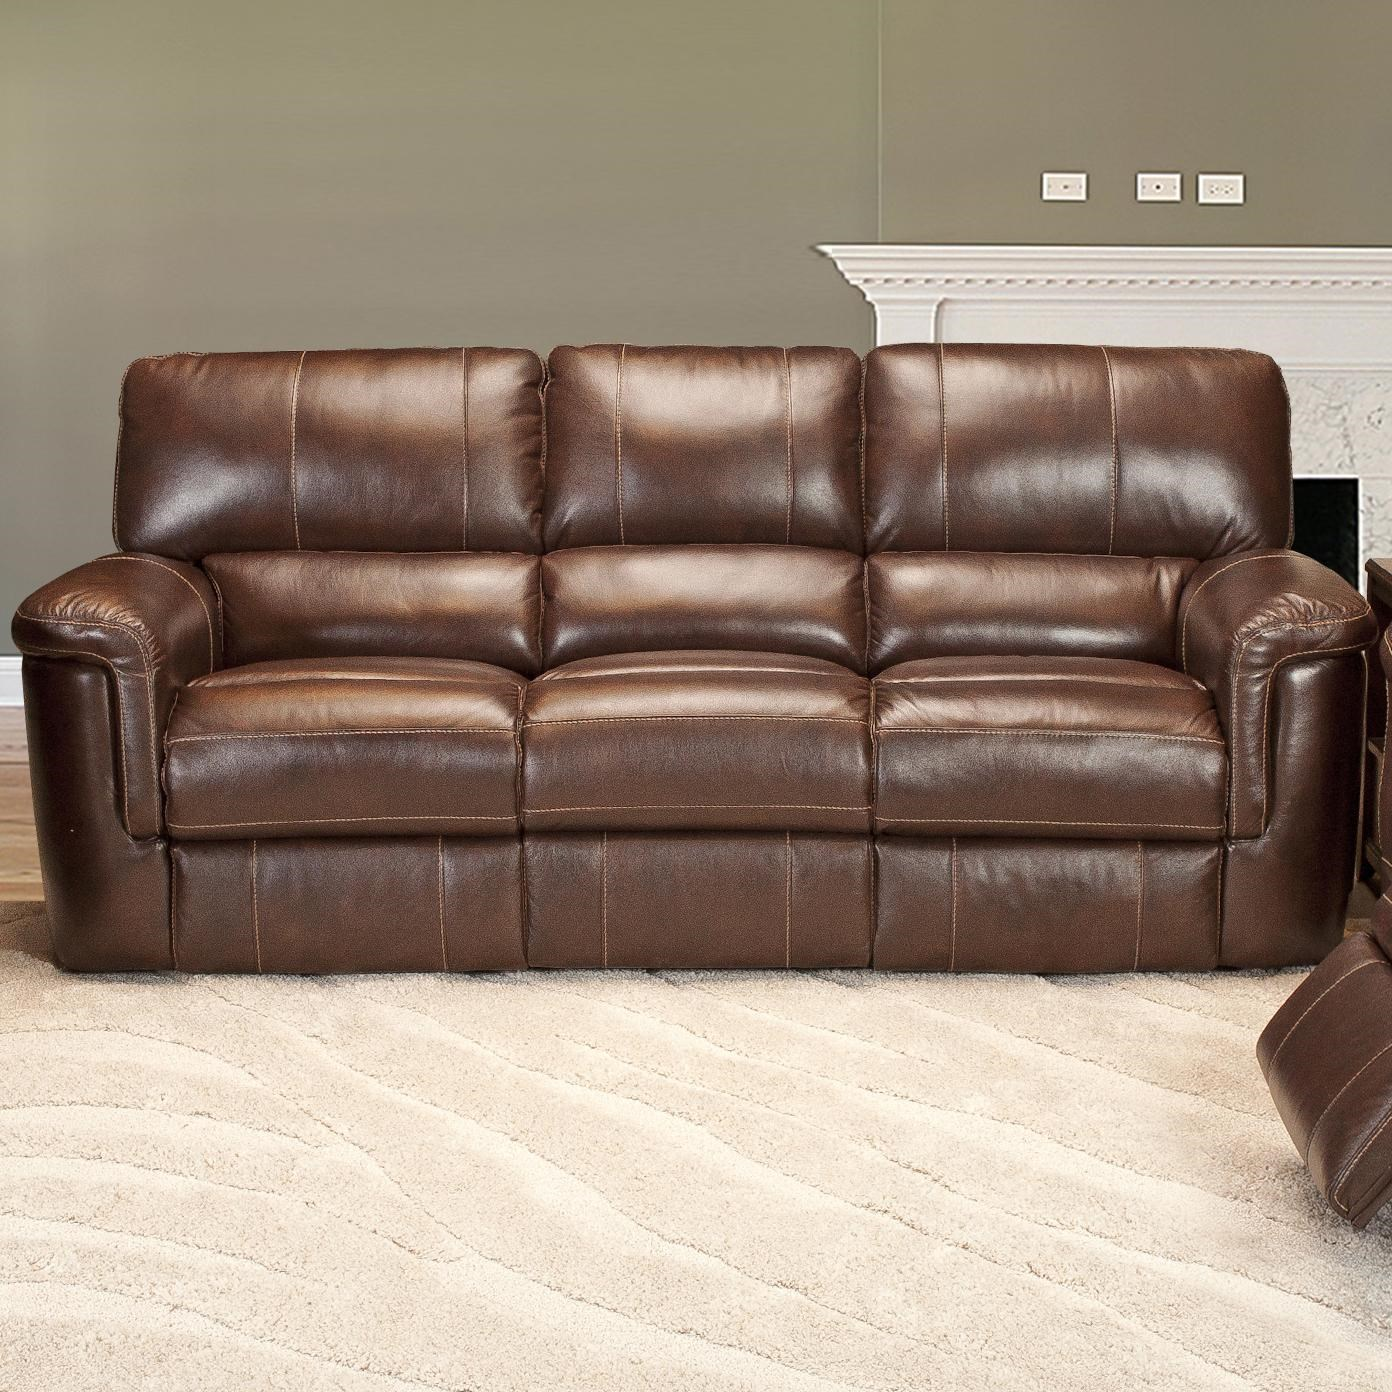 Parker Living Hitchcock Casual Duel Power Reclining Sofa